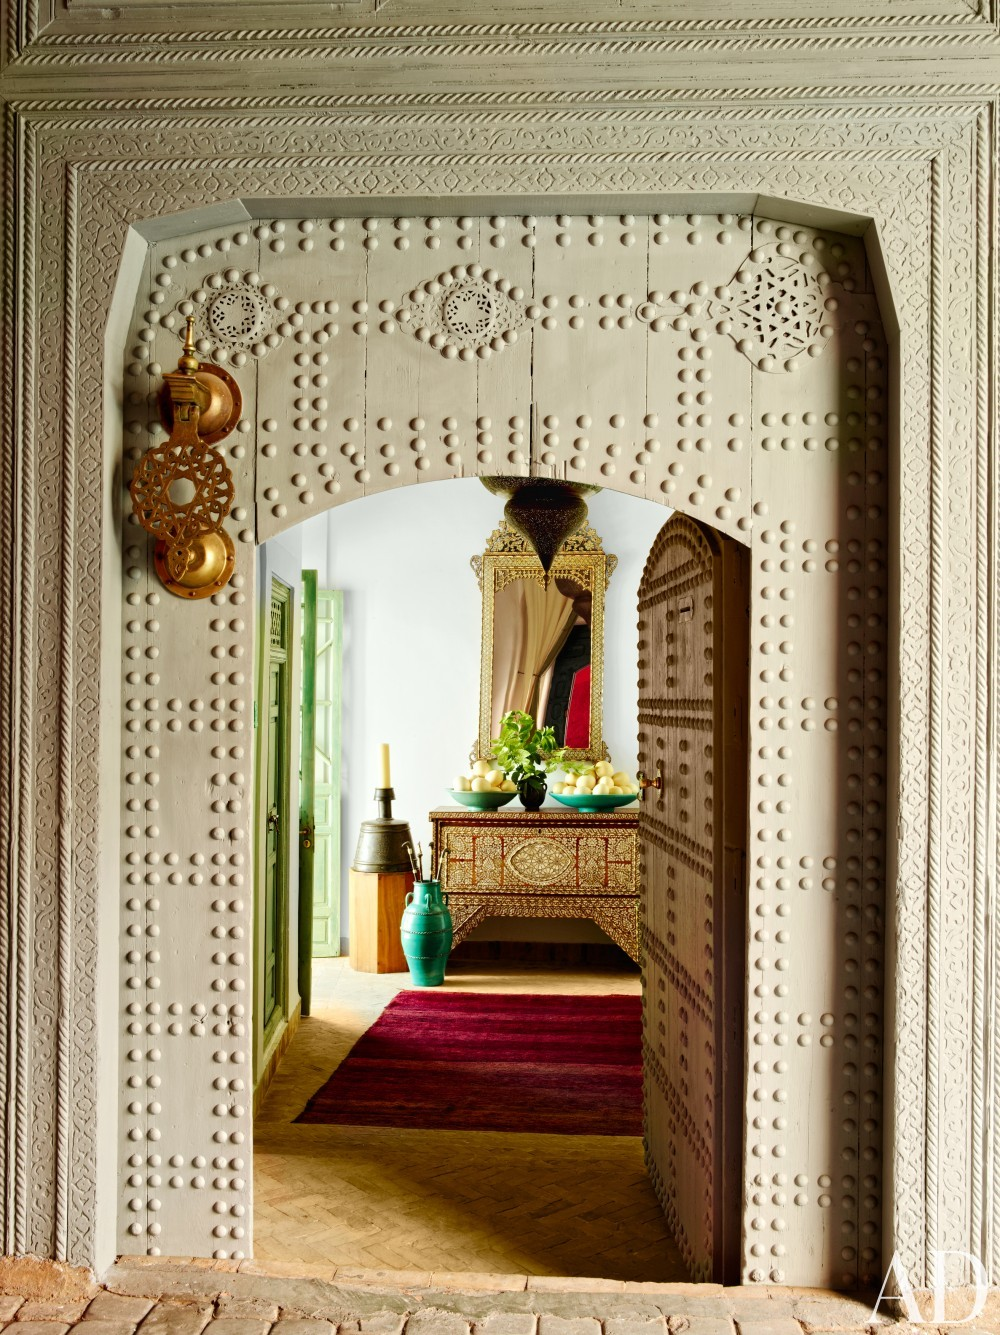 Exotic Entrance Hall by Ahmad Sardar-Afkhami in Marrakech, Morocco